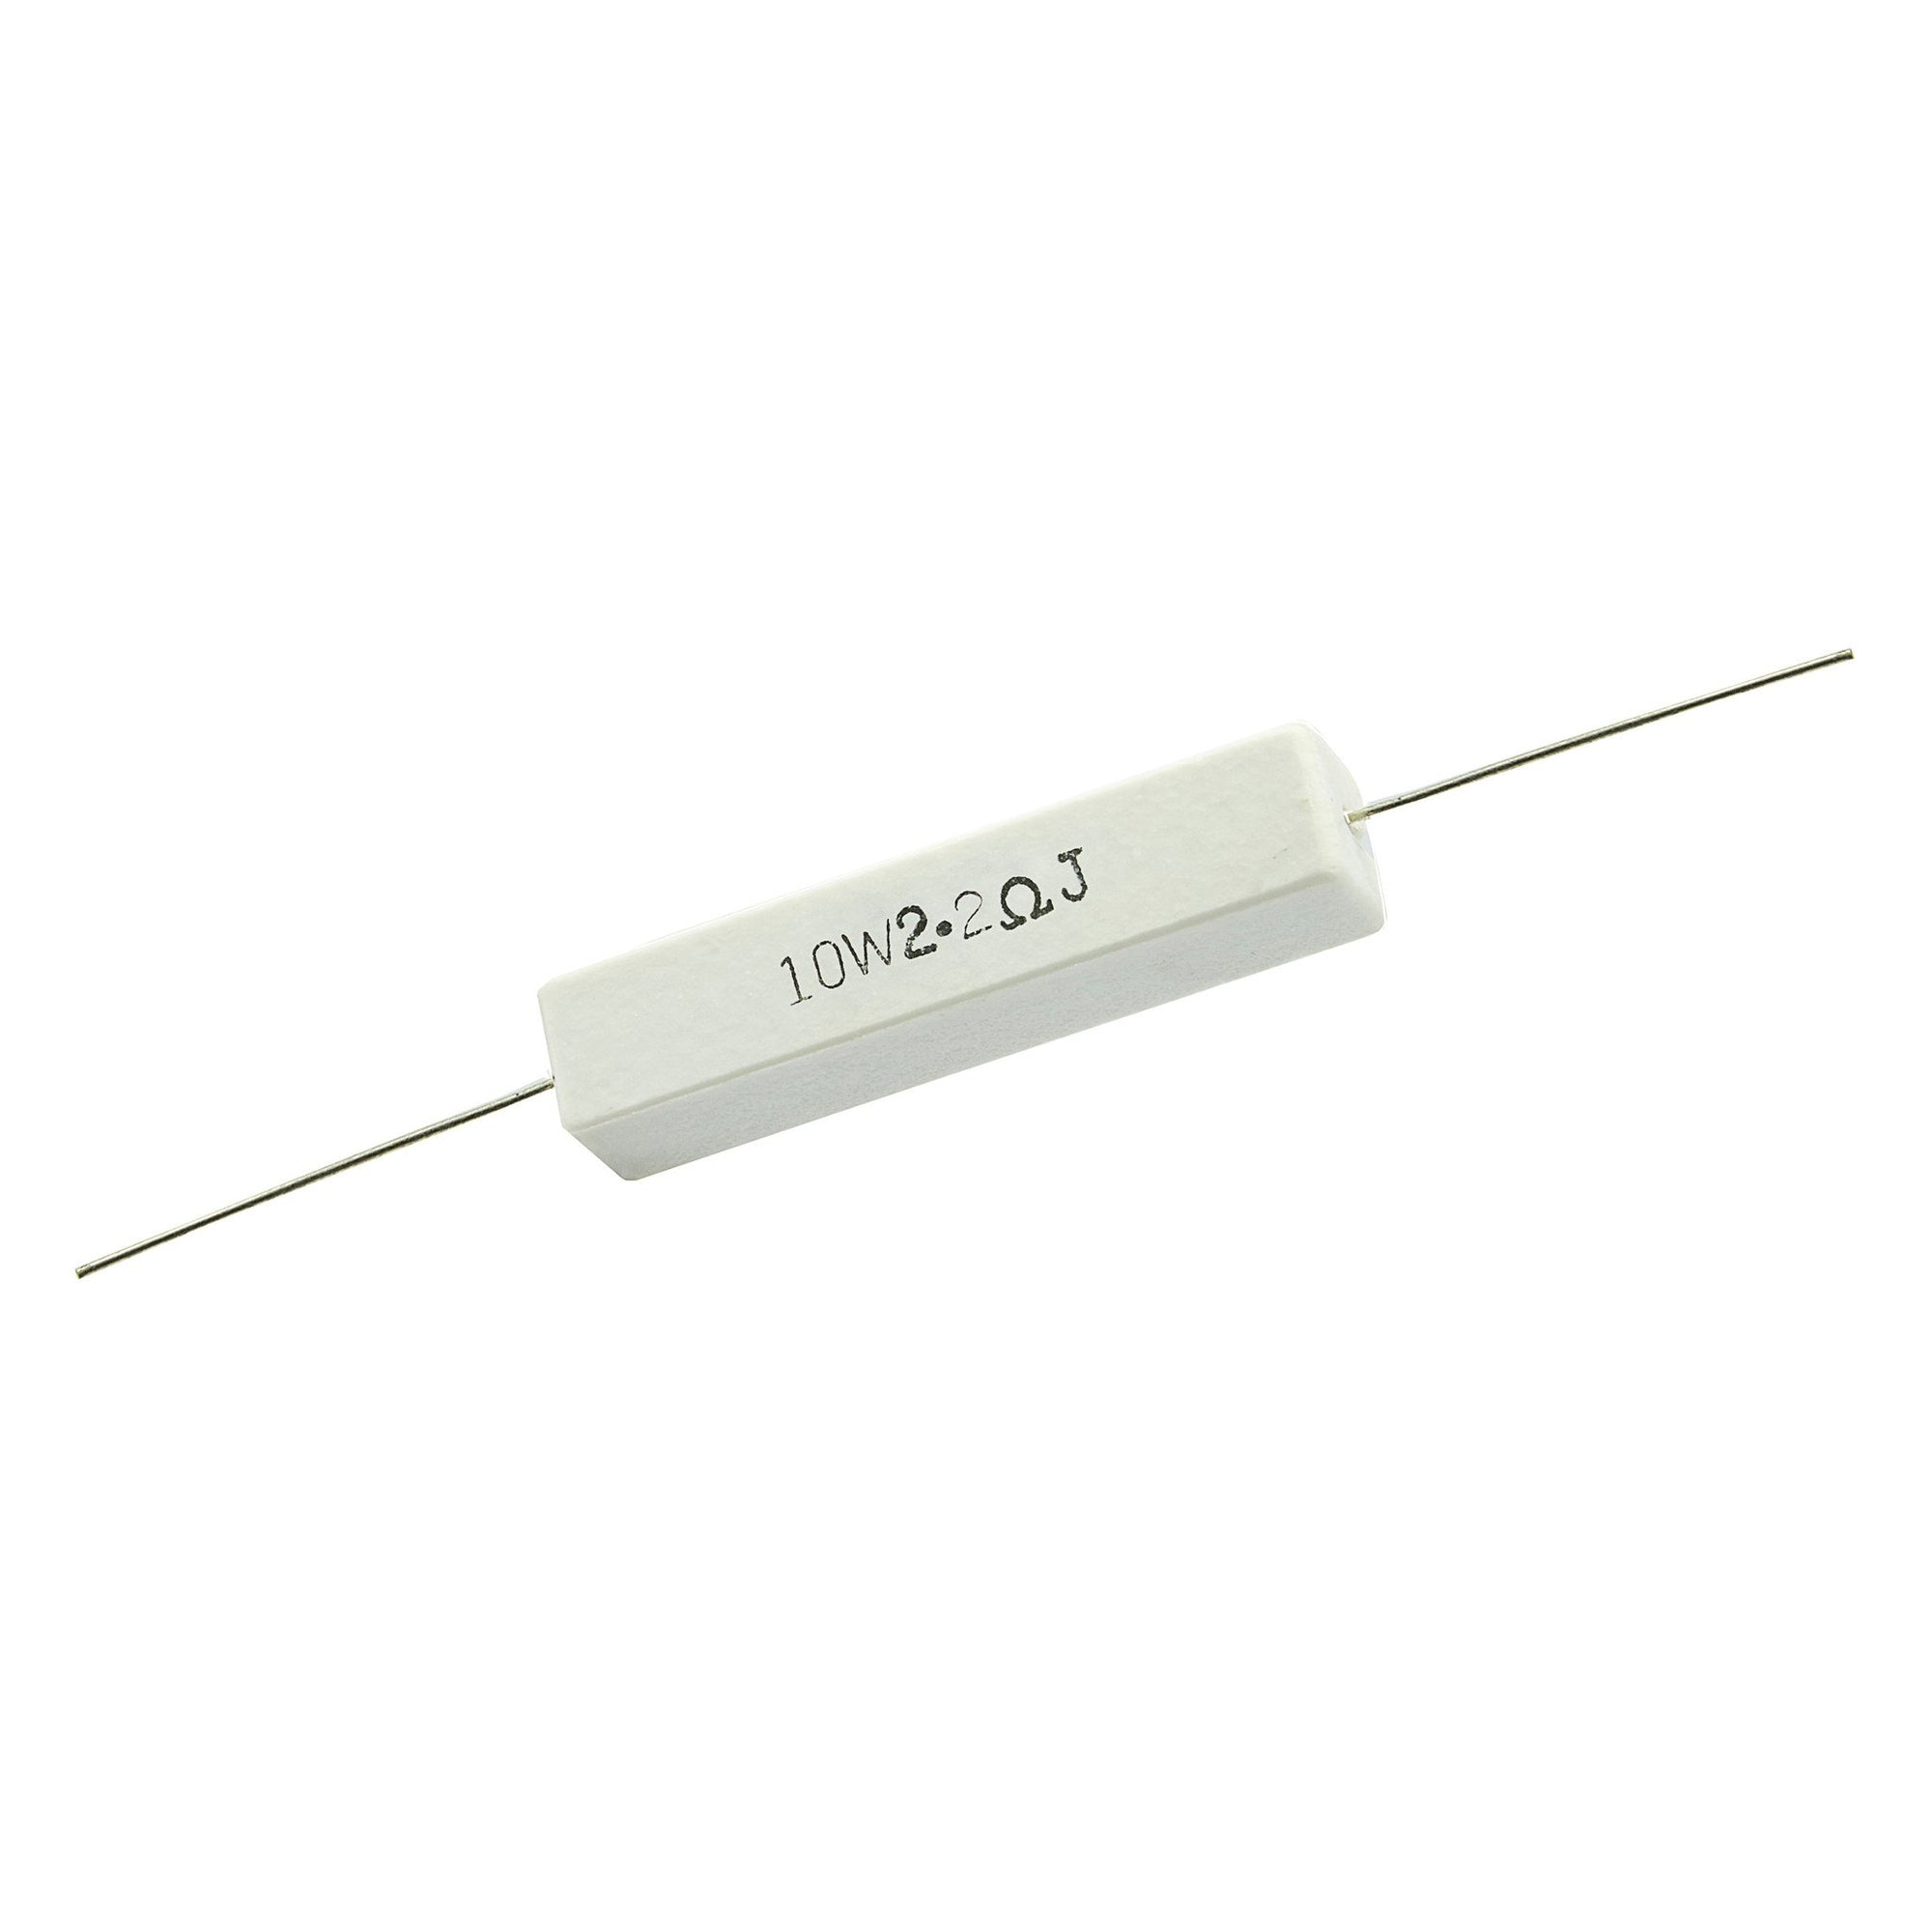 2.2 Ohm 10 Watt 5% Ceramic Wirewound Resistor - Willys-Hifi Ltd